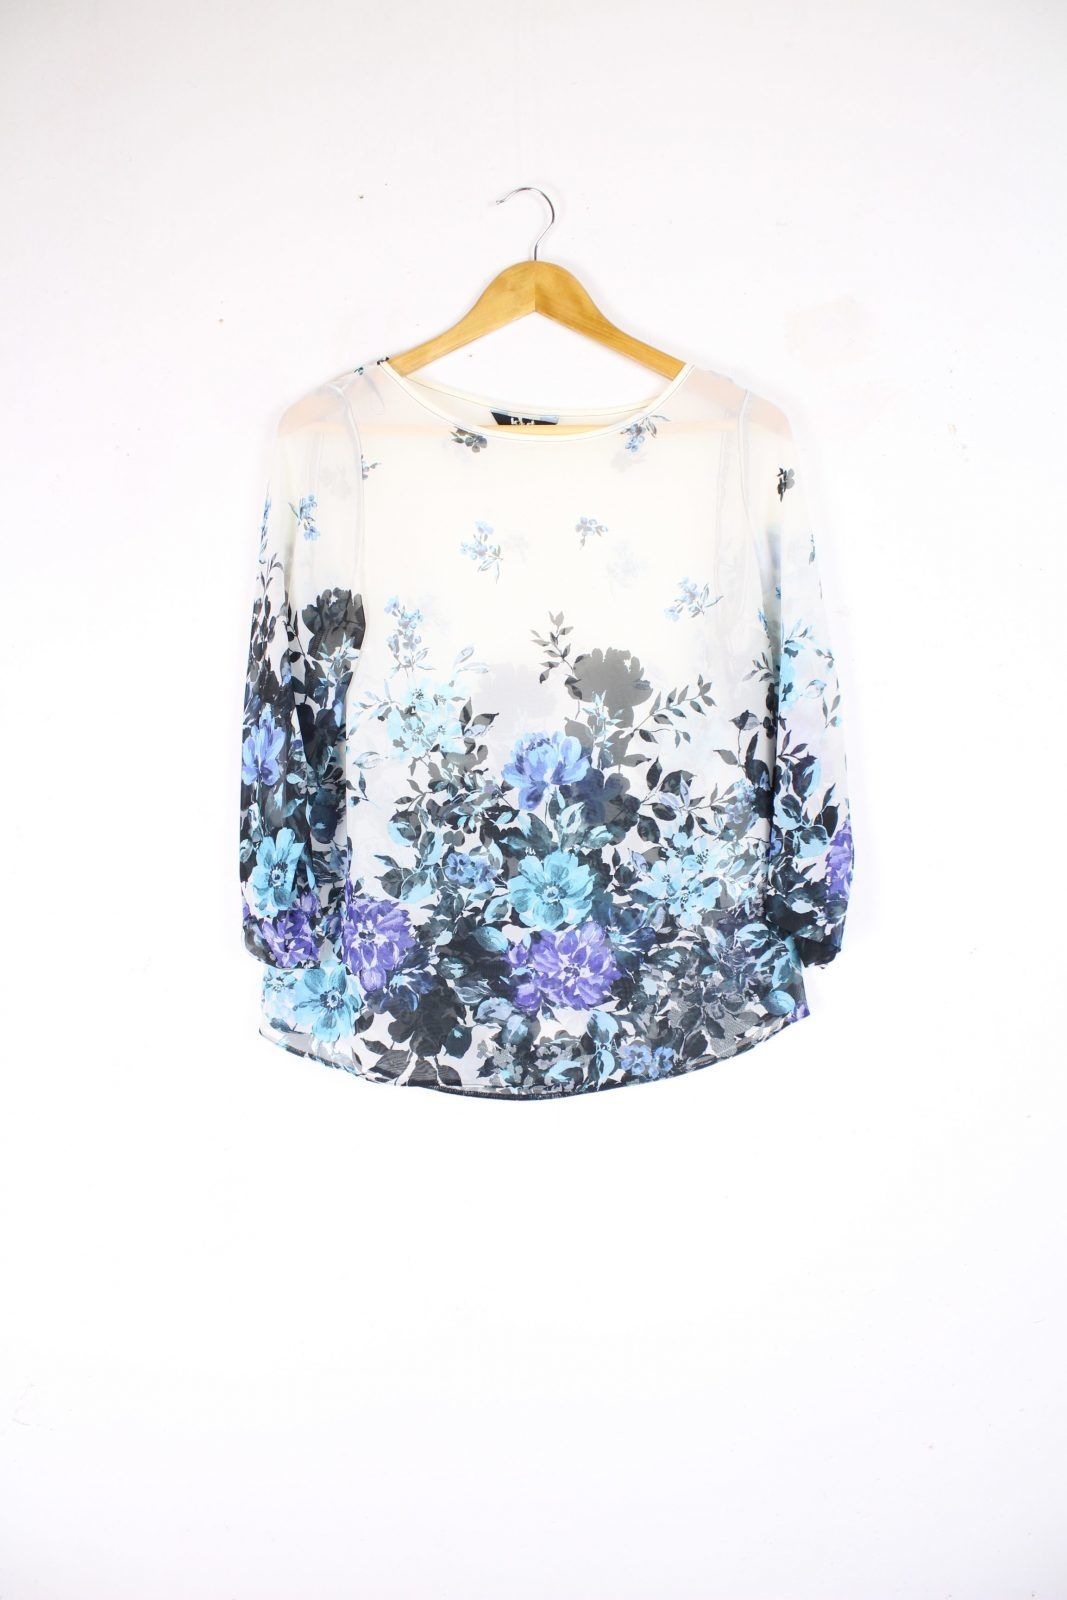 Second-hand Clothing - Women, Tops & Shirts